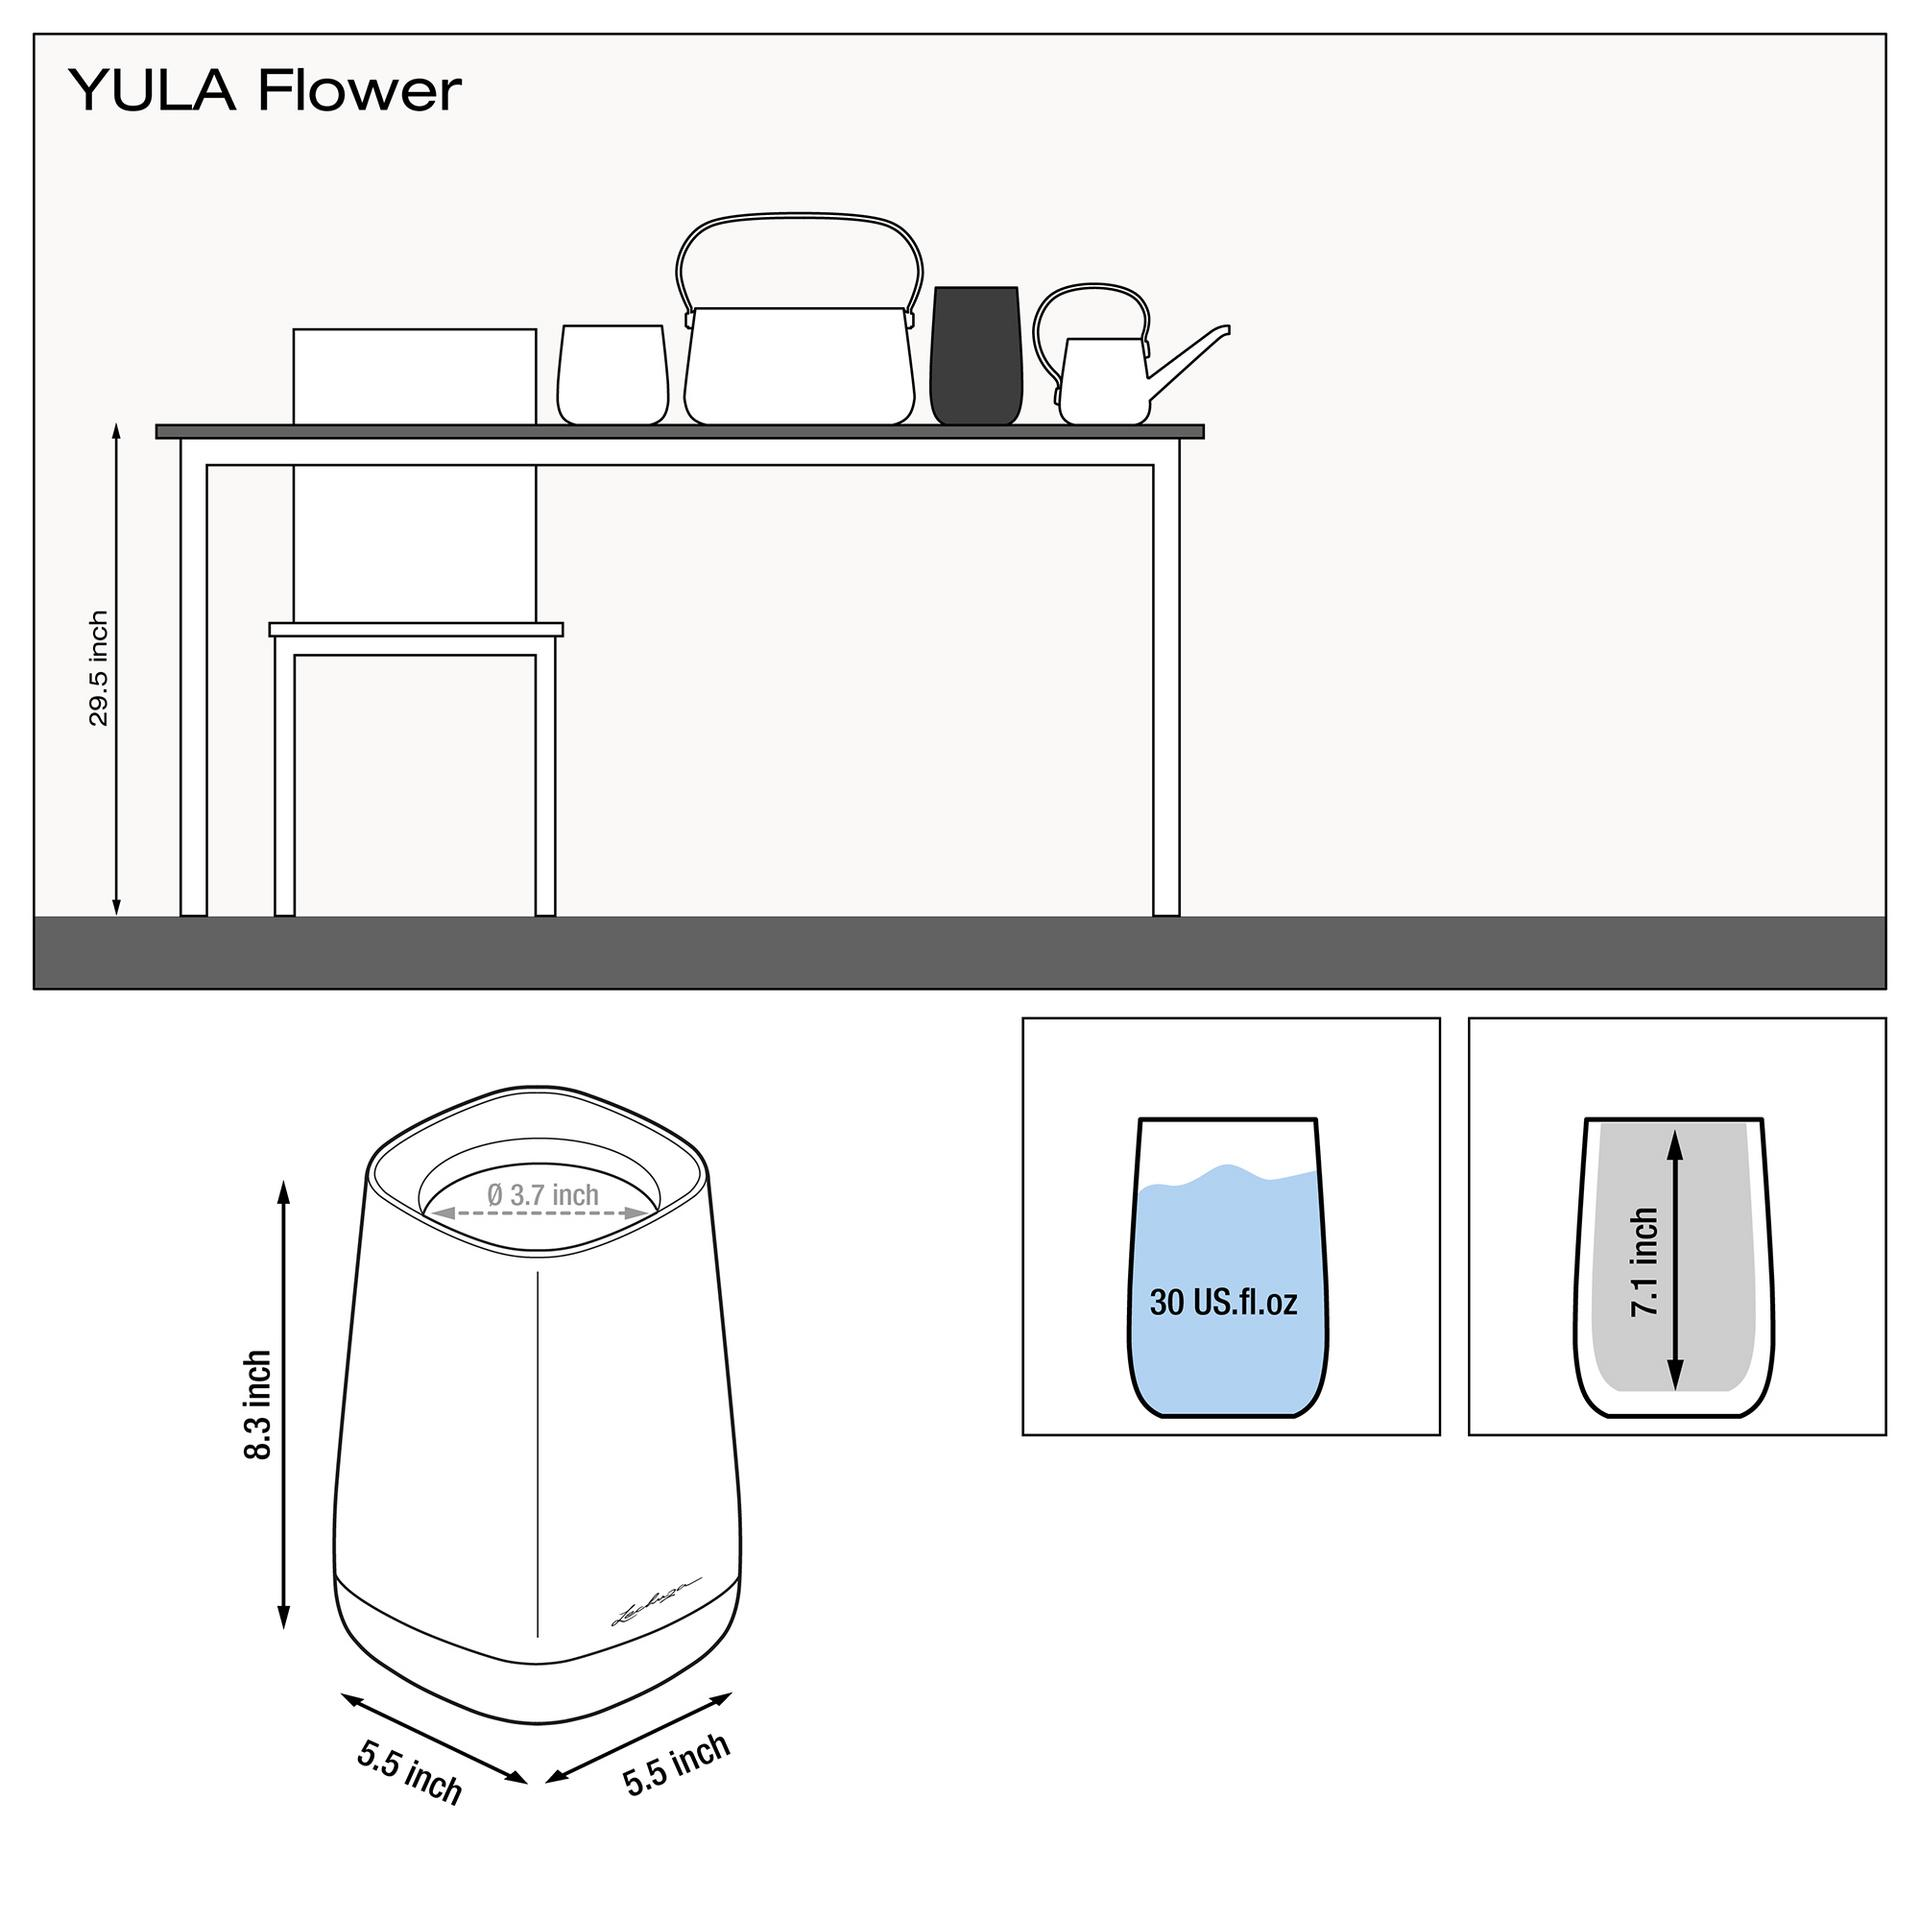 le_yula-flower_product_addi_nz_us